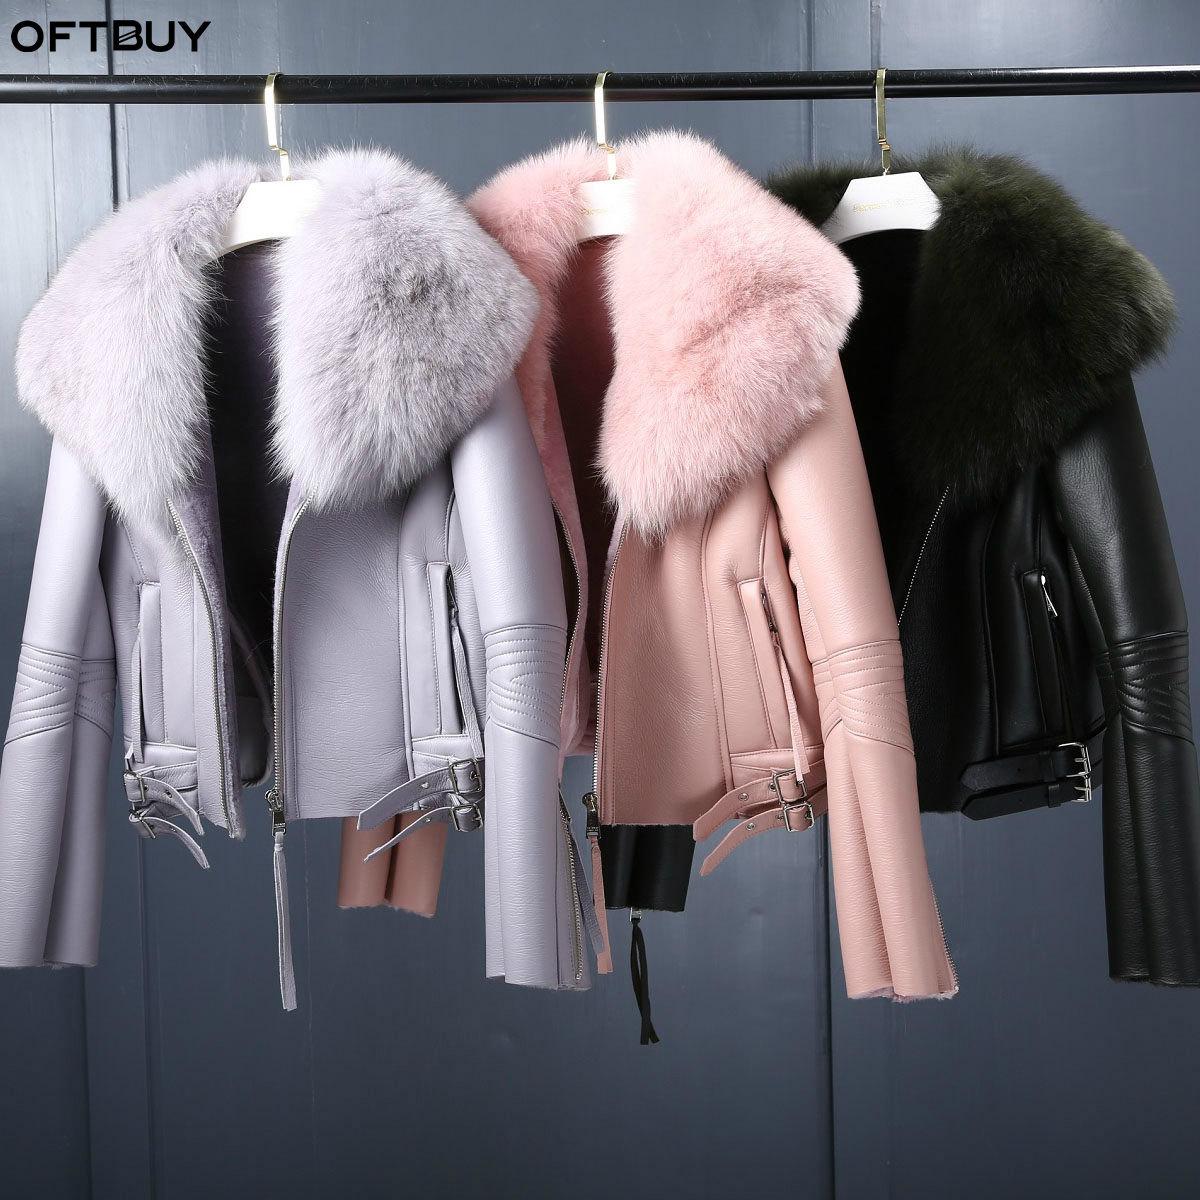 OFTBUY 2019 Real Fur Coat Winter Jacket Women Natural Fox Fur Collar Real Wool Fur Liner PU Faux Leather Thick Warm Streetwear